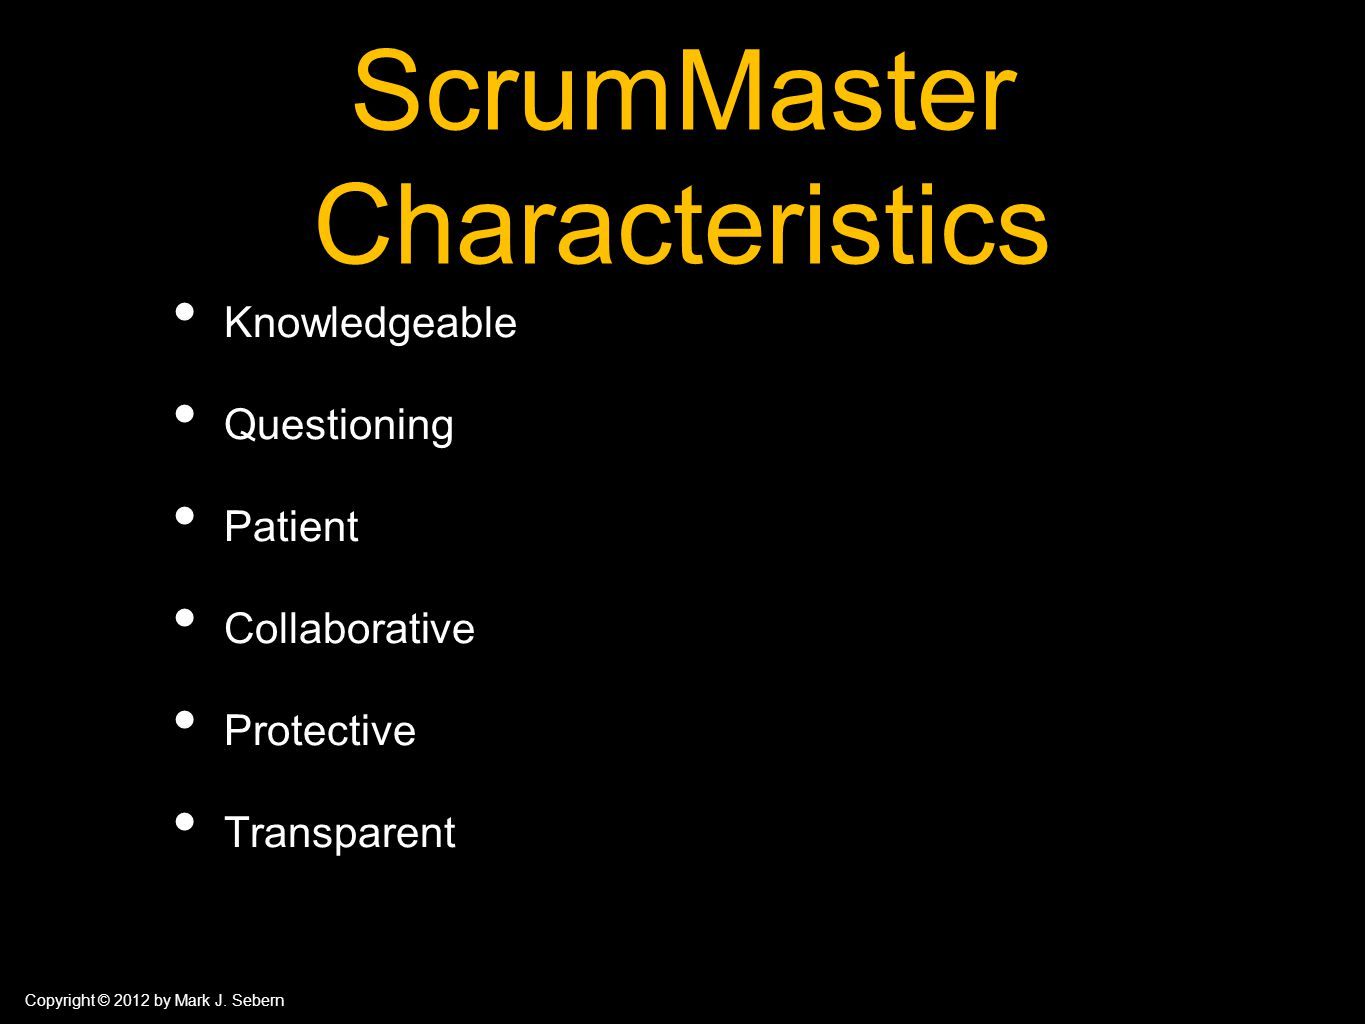 Copyright © 2012 by Mark J. Sebern ScrumMaster Characteristics Knowledgeable Questioning Patient Collaborative Protective Transparent